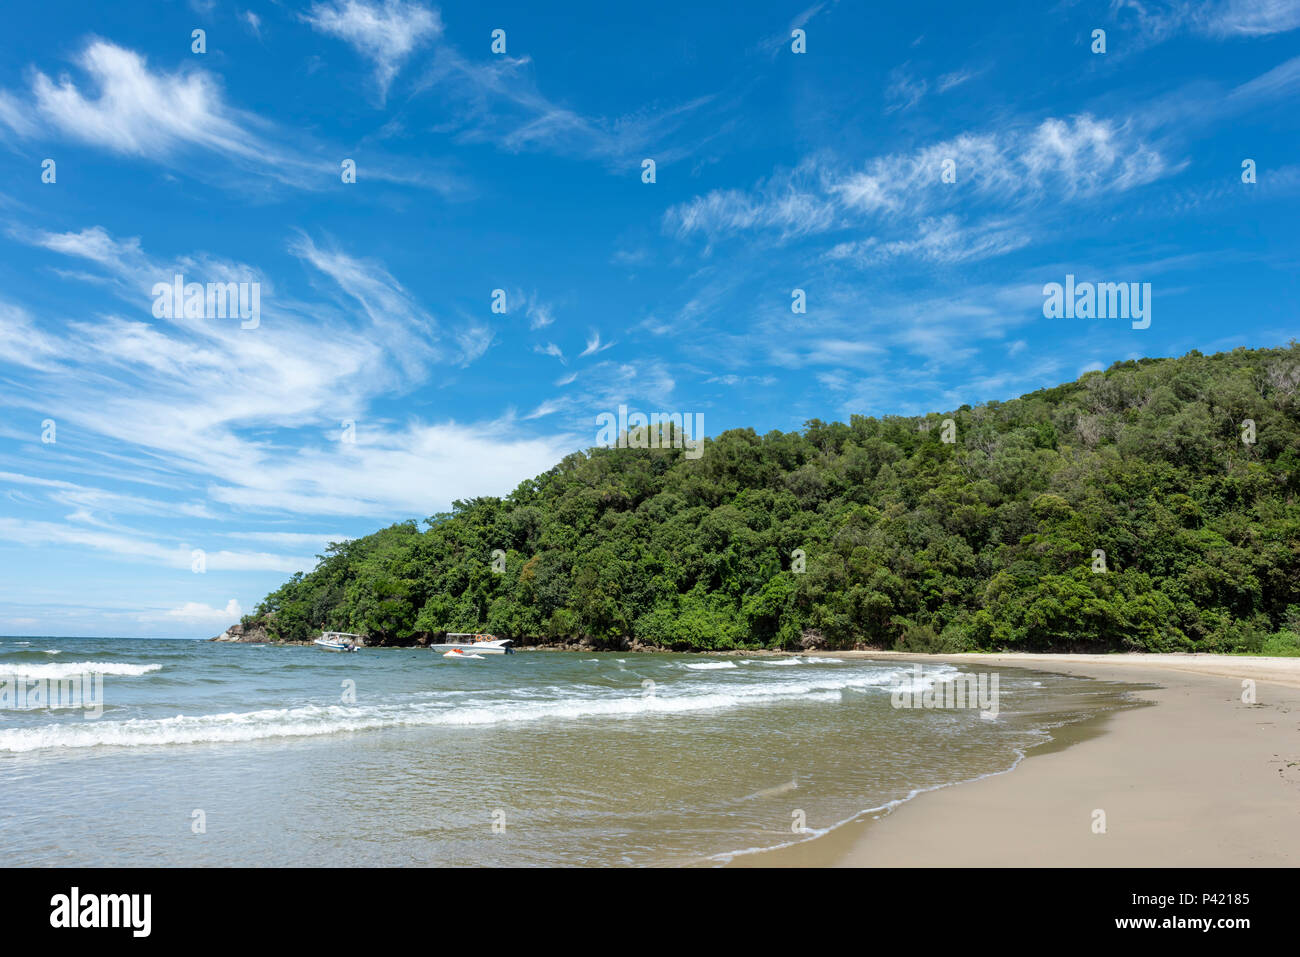 The South China Sea laps the beach in Kota Kinabalu on Borneo, Malaysia - Stock Image